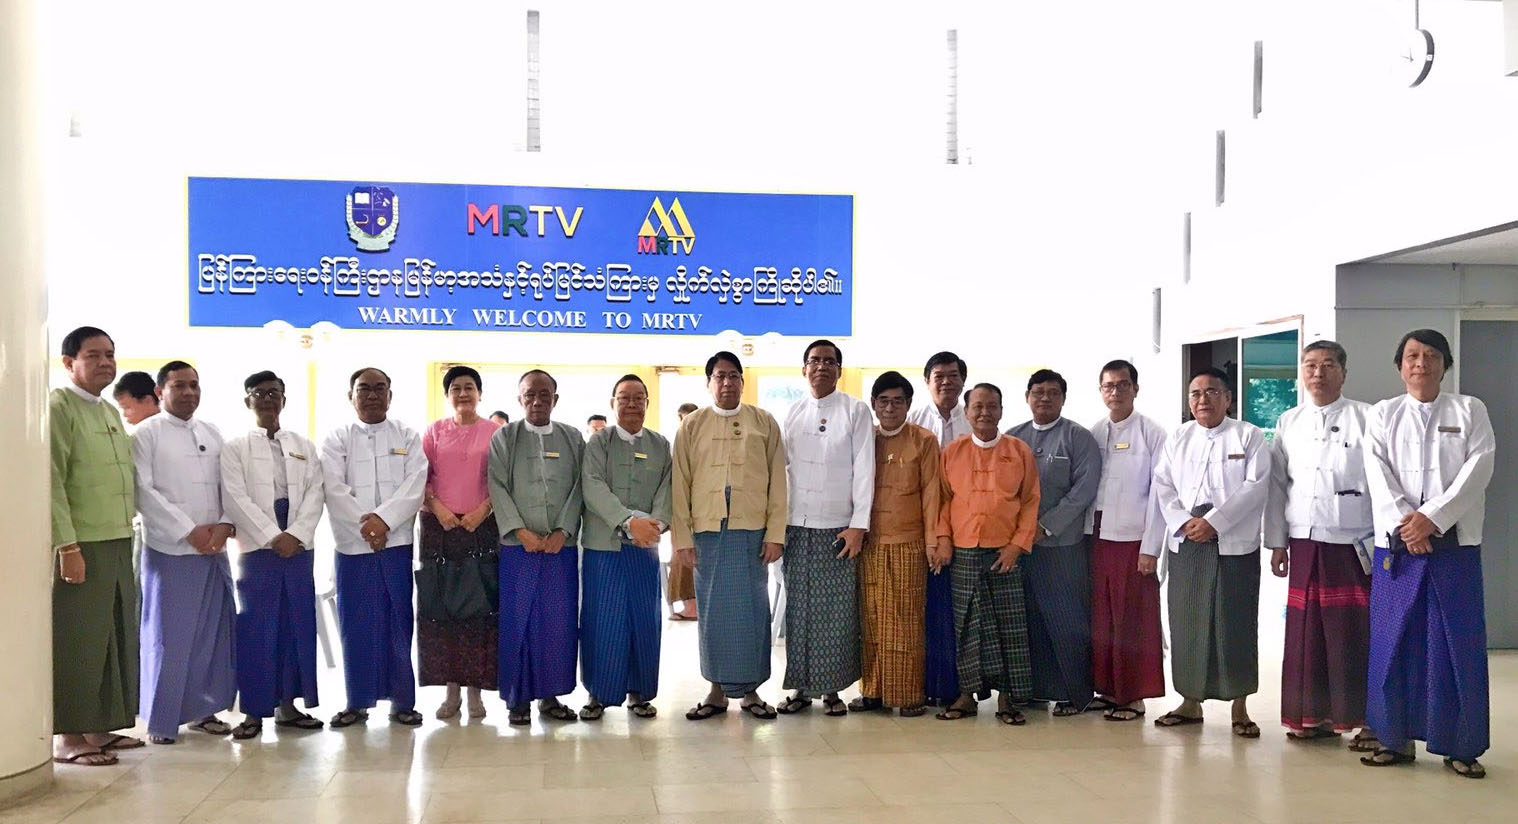 Union Minister Dr Pe Myint, Deputy Minister U Aung Hla Tun and Chairman U Tin Oo Lay and members of Myanmar Music Association (Central) pose for a documentary photo at the hall of the Myanma Radio and Television yesterday.Photo: MNA